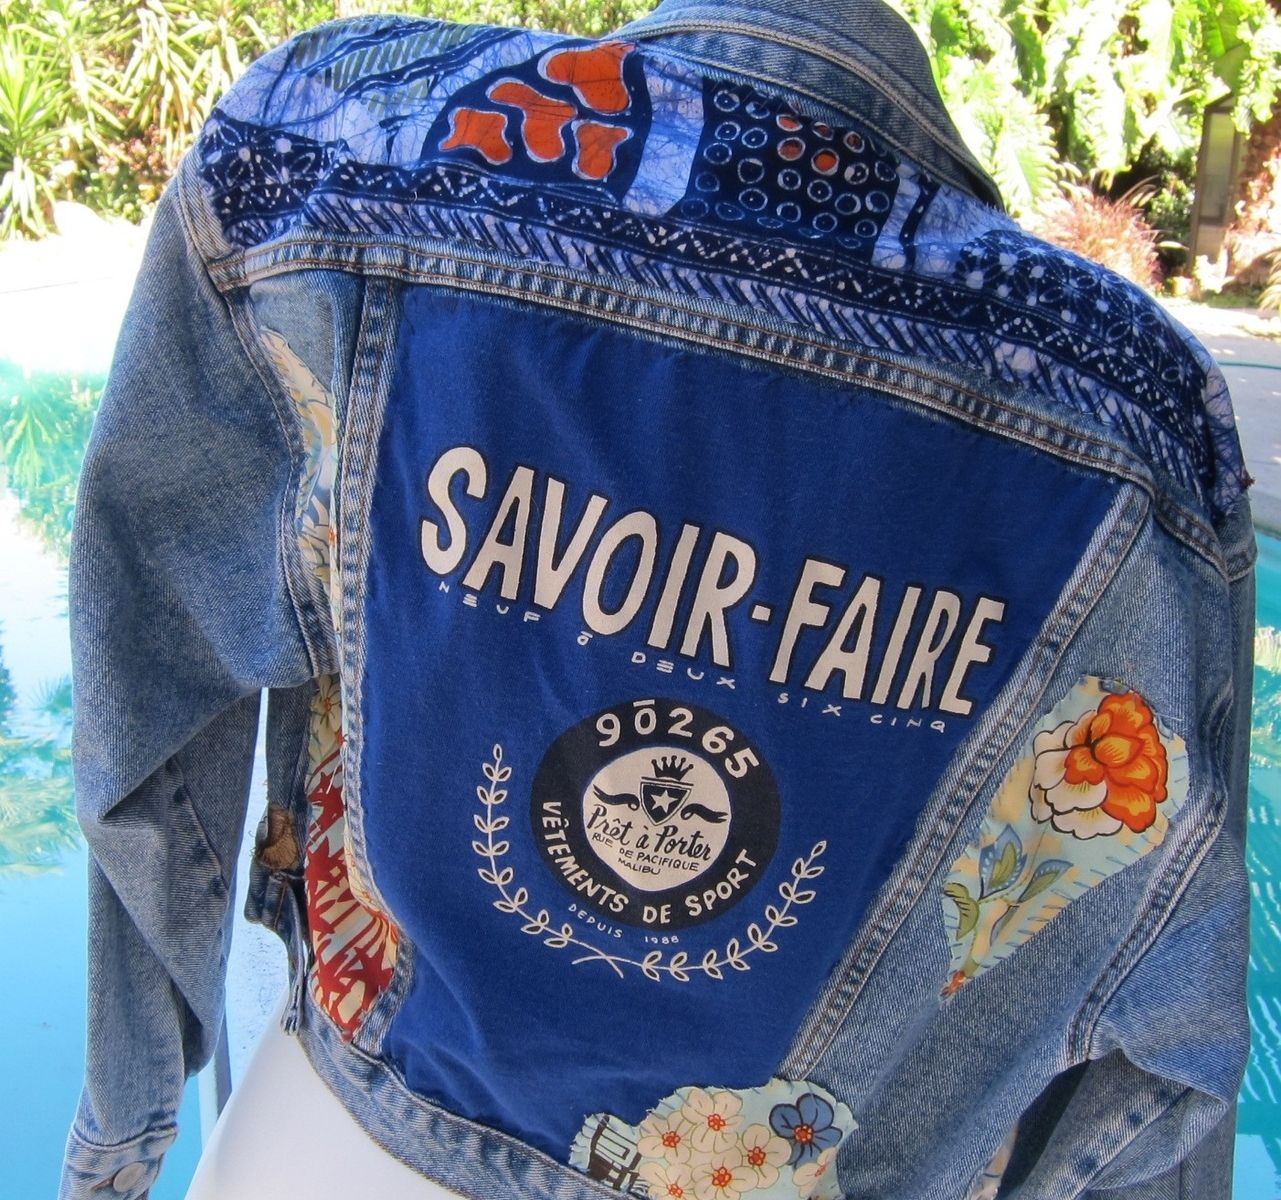 Hand Crafted Appliqued Denim Jacket With Embroidered Silk